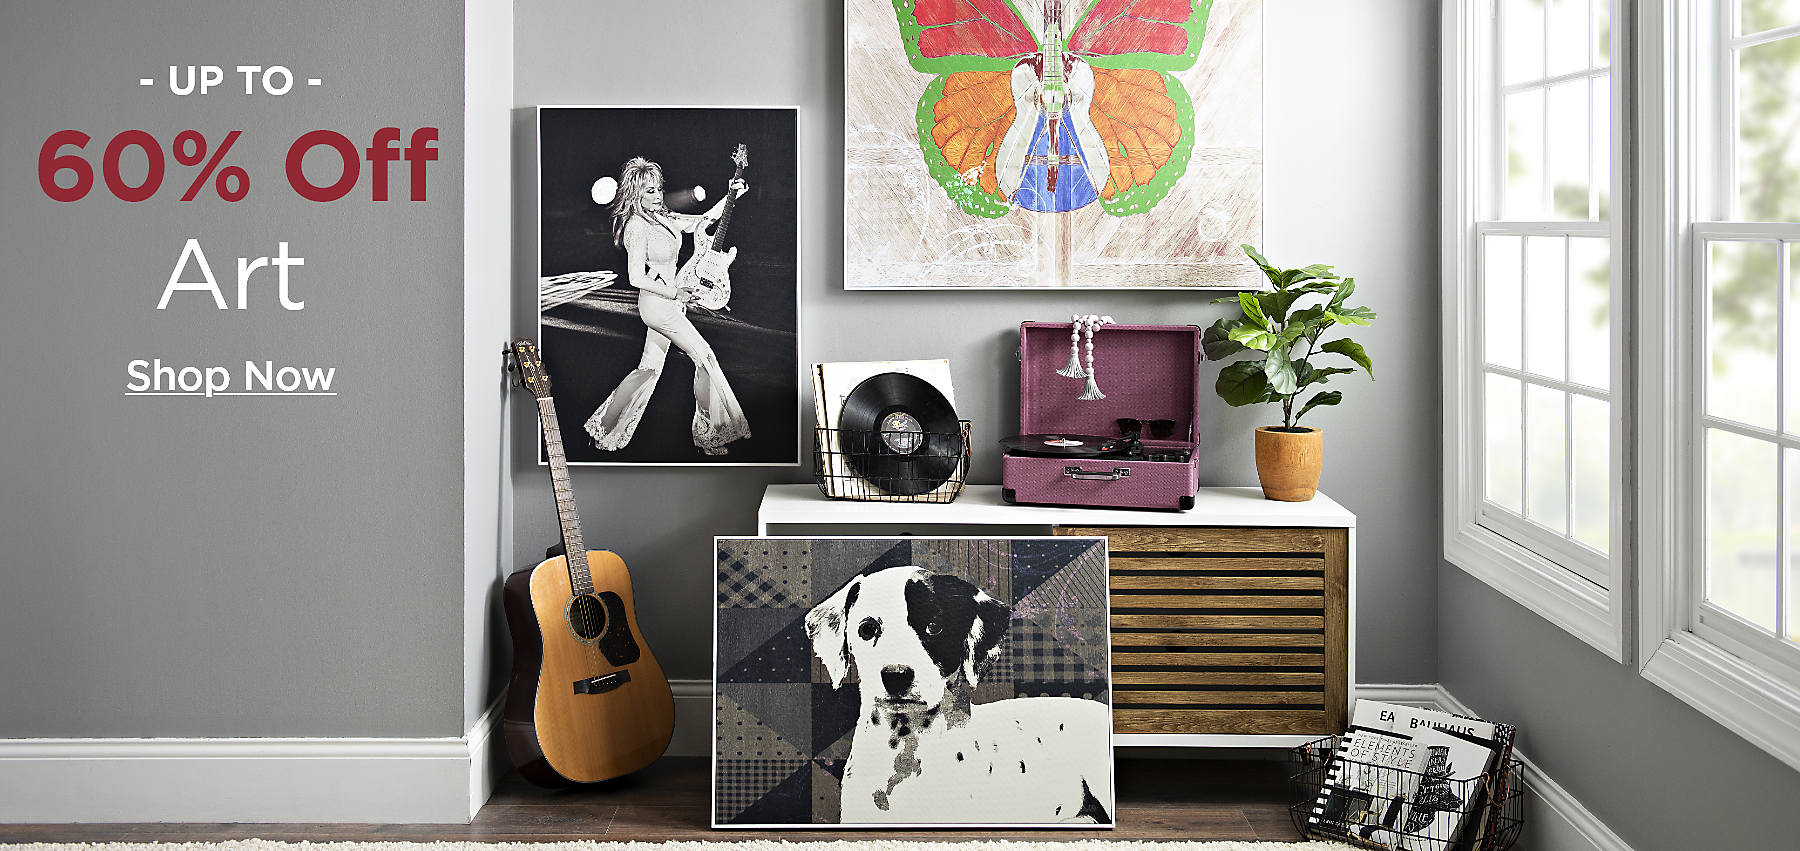 Art Up to 60% Off